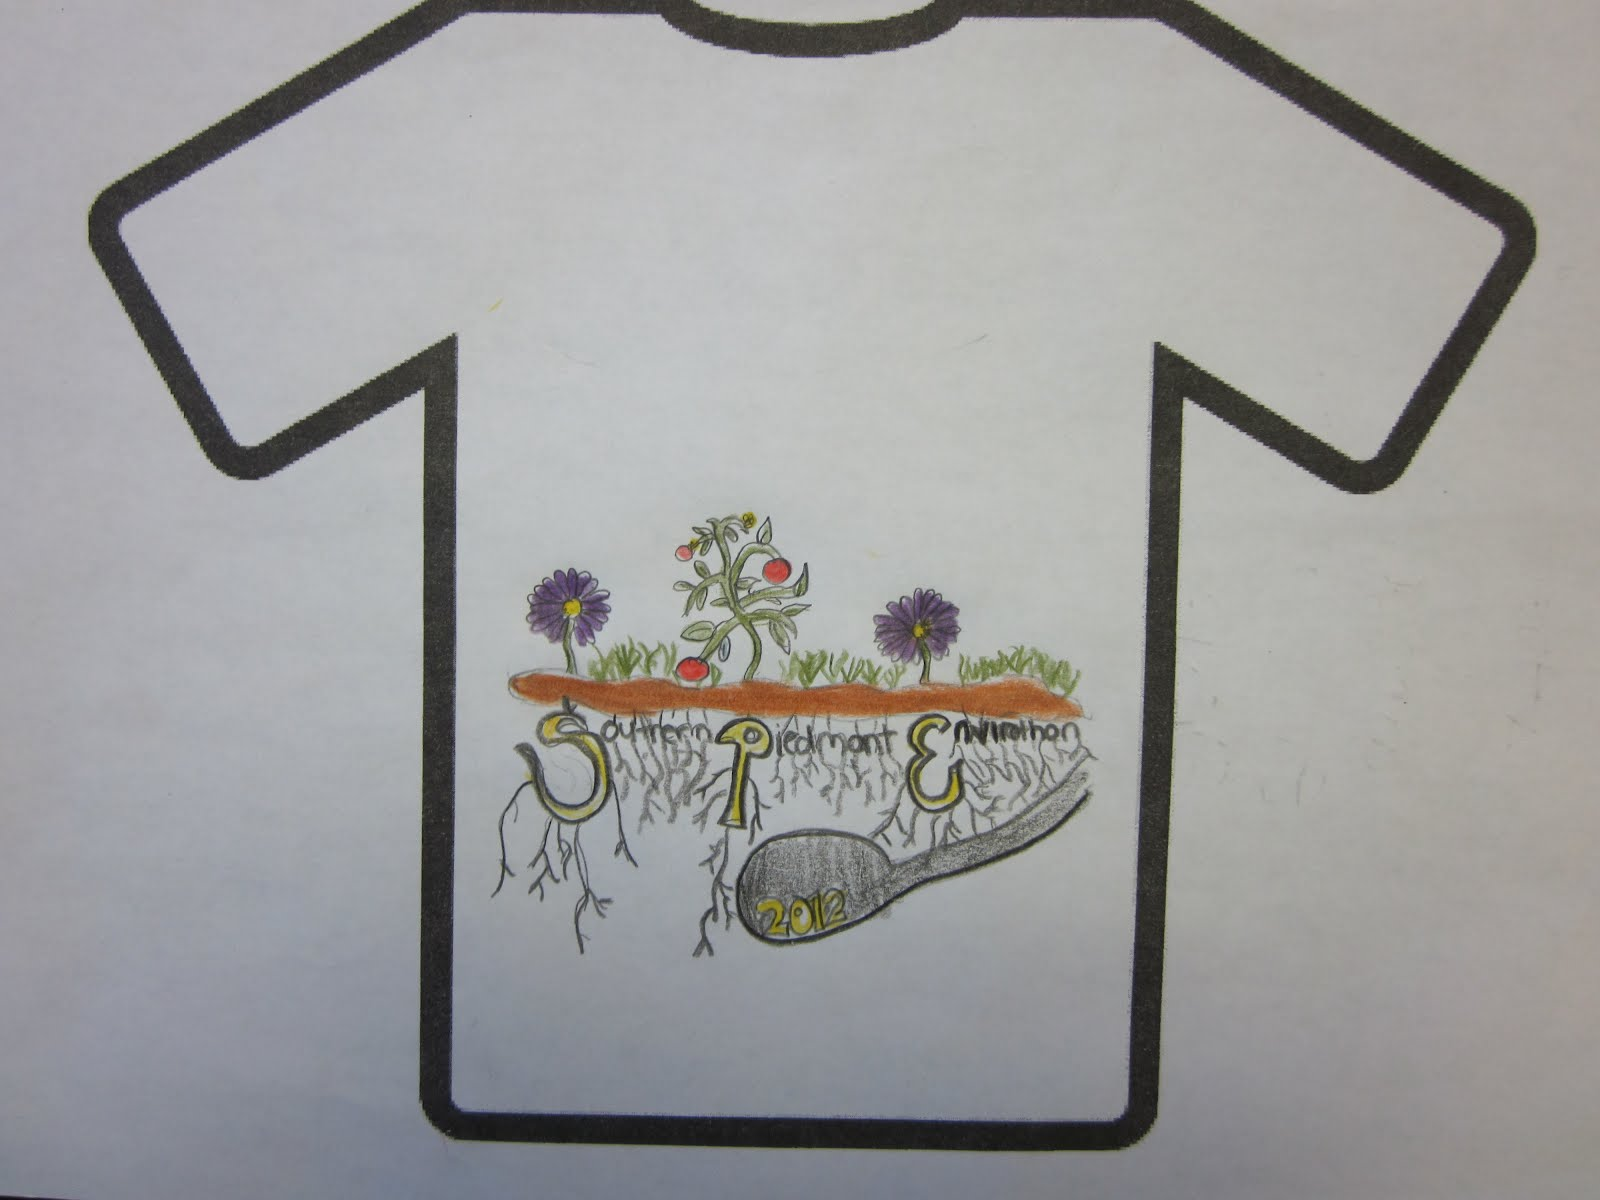 Shirt design examples - Examples Of Student Submissions For The Nc Envirothon T Shirt Design Contest